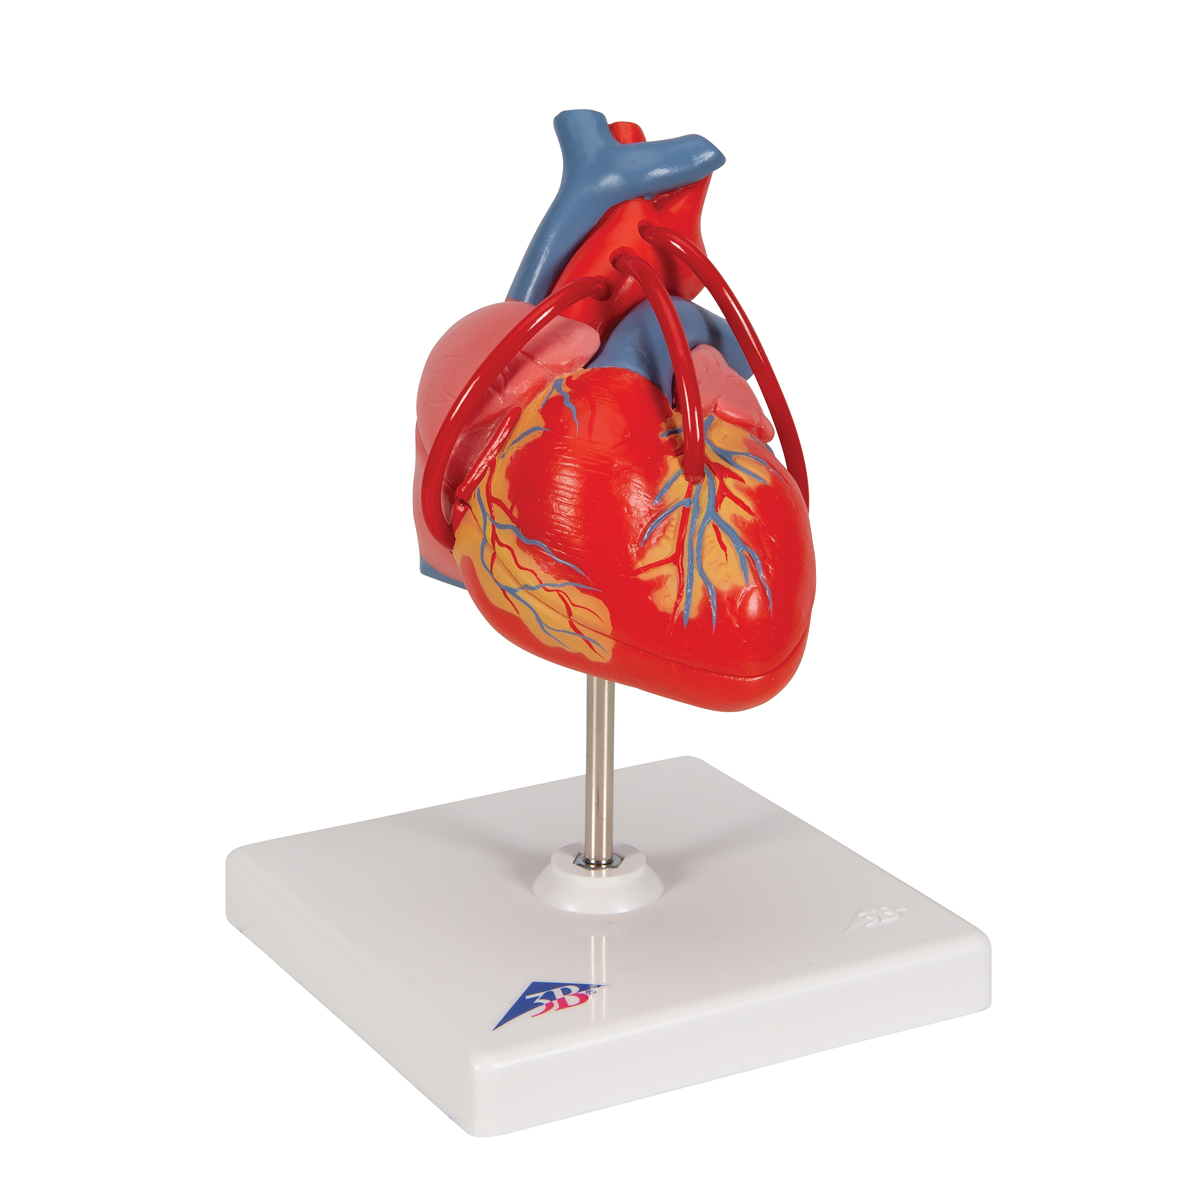 Anatomical Heart Model - Anatomy of the Heart - Heart with Bypass Model